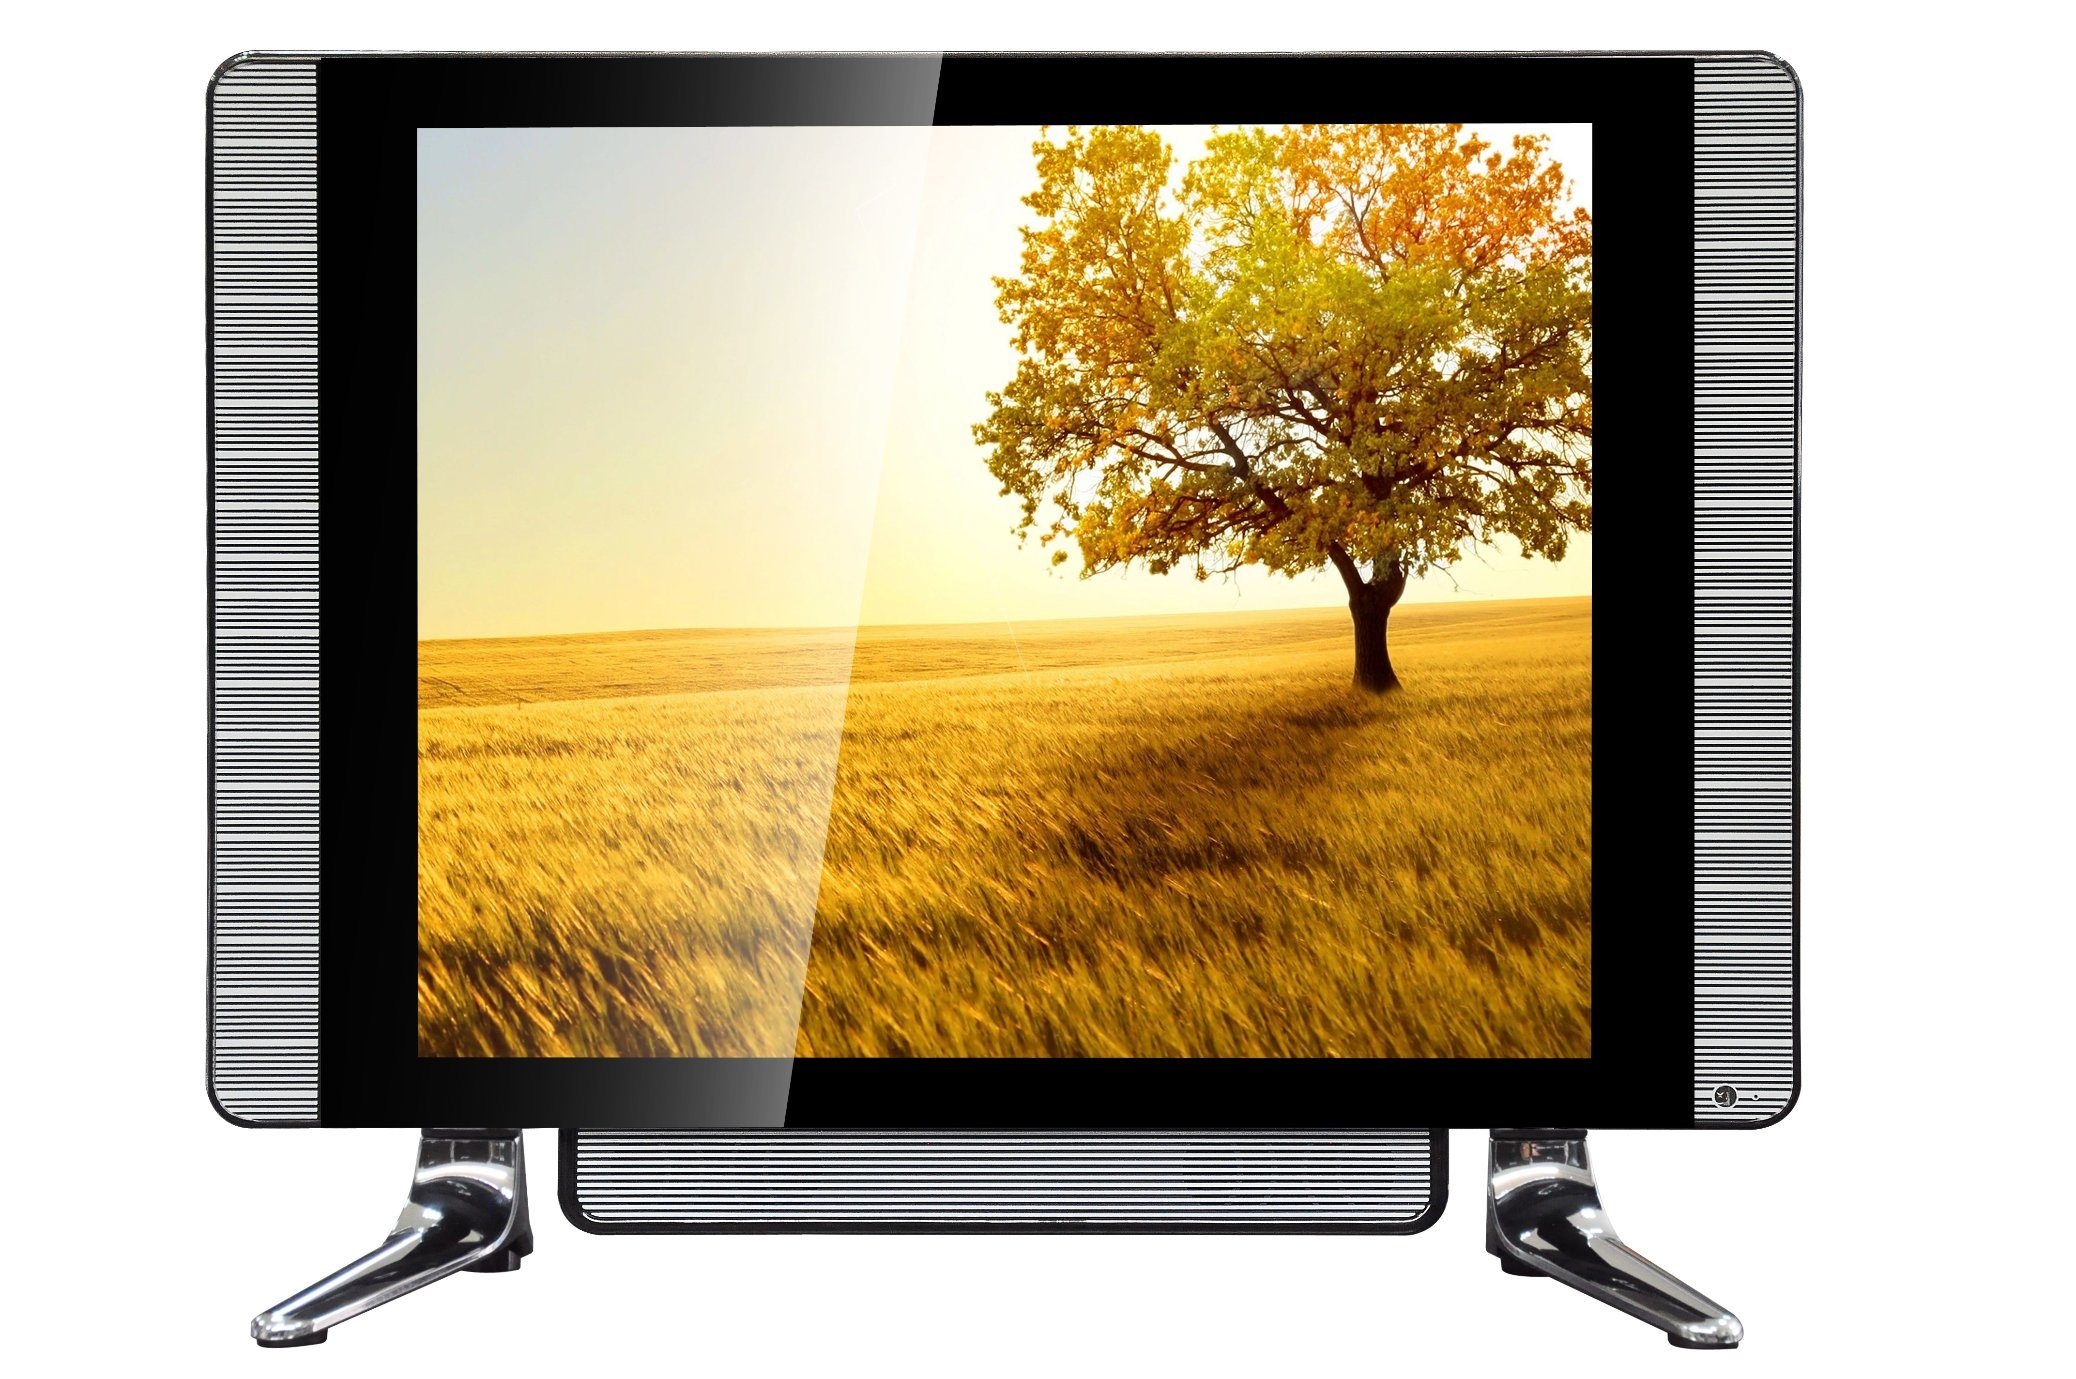 15 Inches Flat Screen Tvcolor LCD LED TV for Home Hotel Use